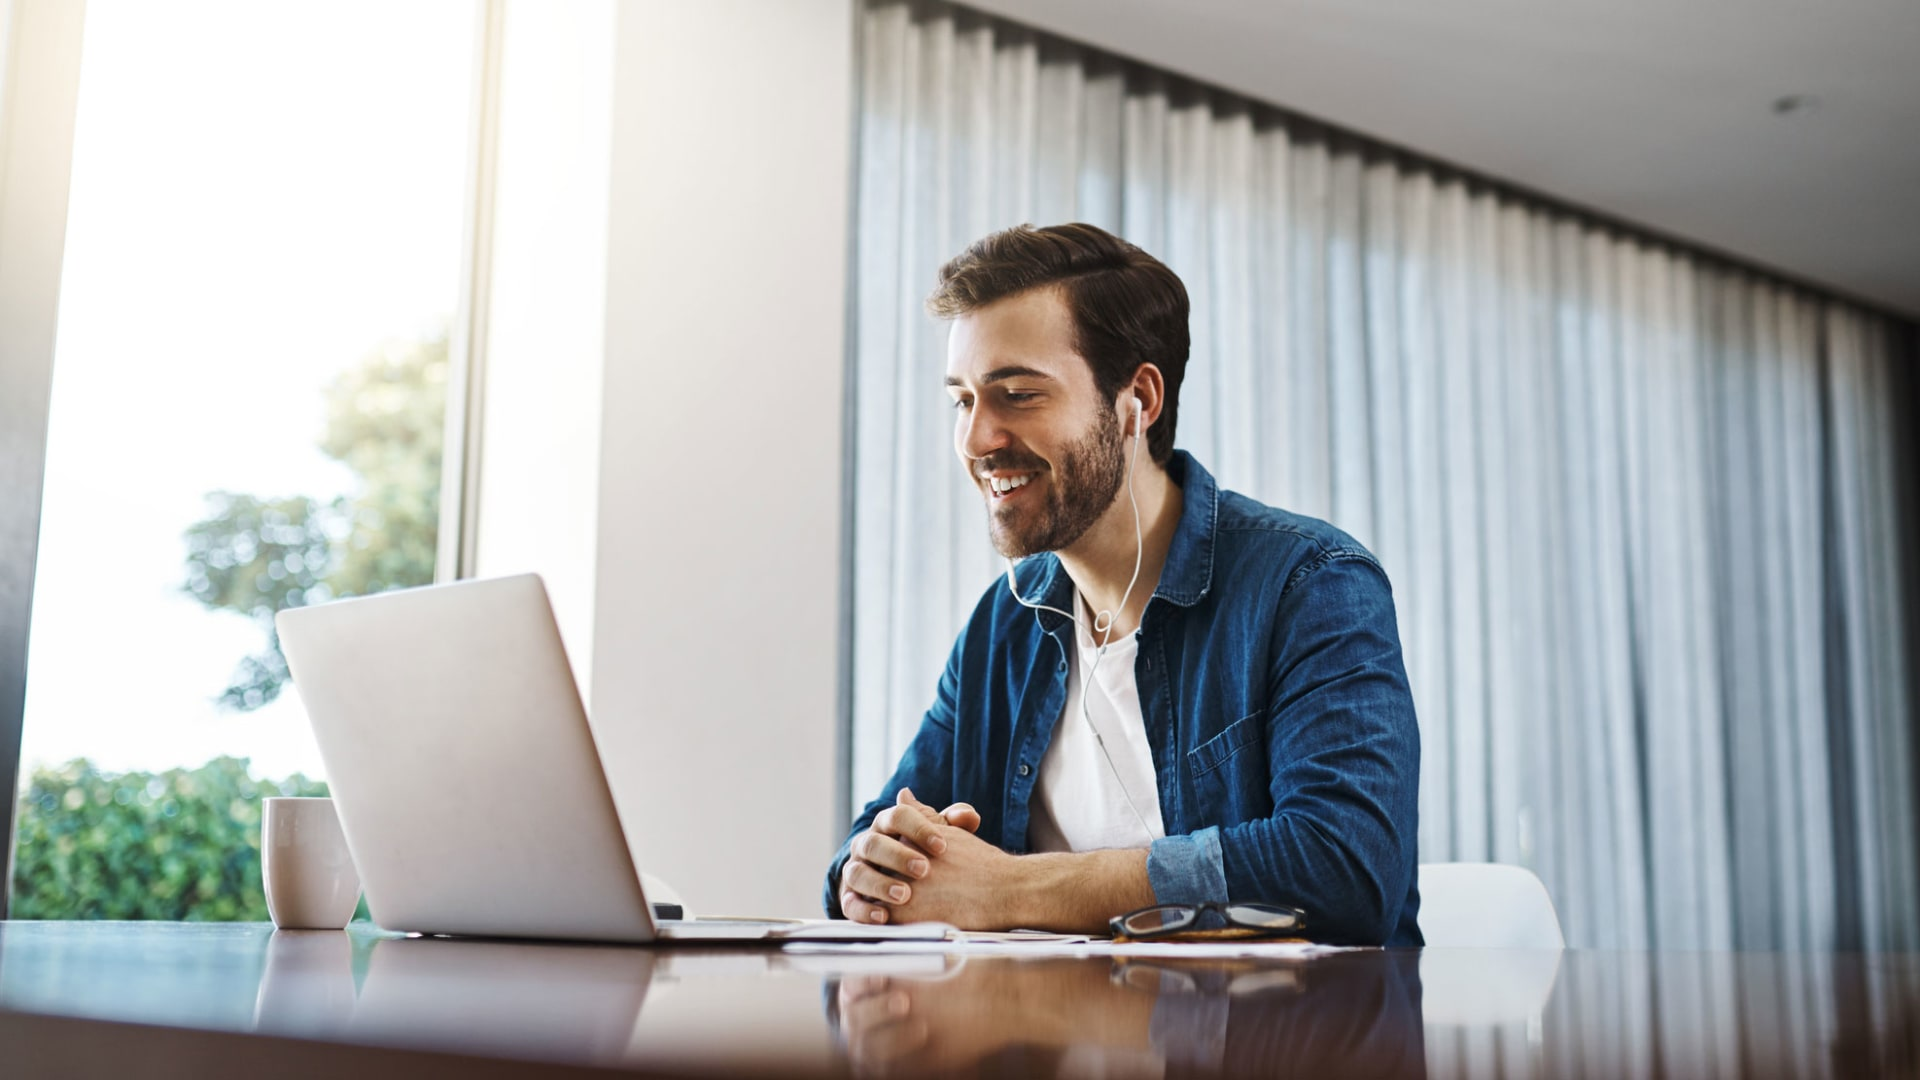 Hiring Remotely? These 6 Interview Questions Will Tell You All You Need to Know